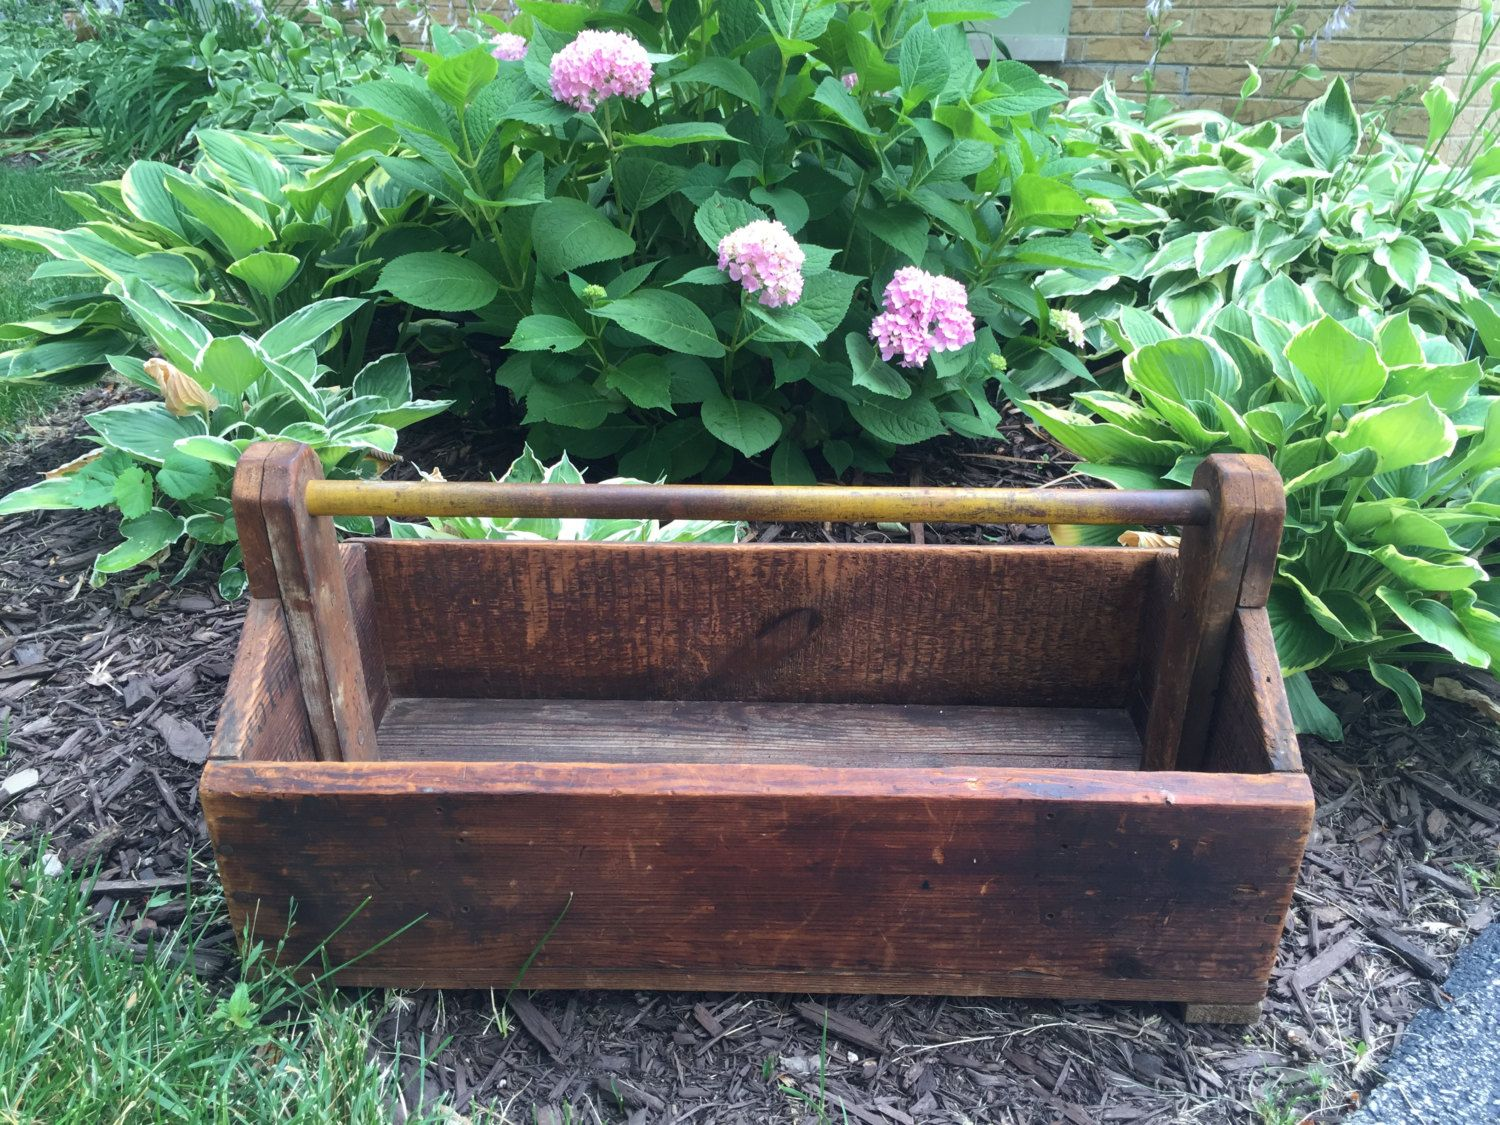 Antique tool box,vintage wood box,garden tool box, decorative tool ...